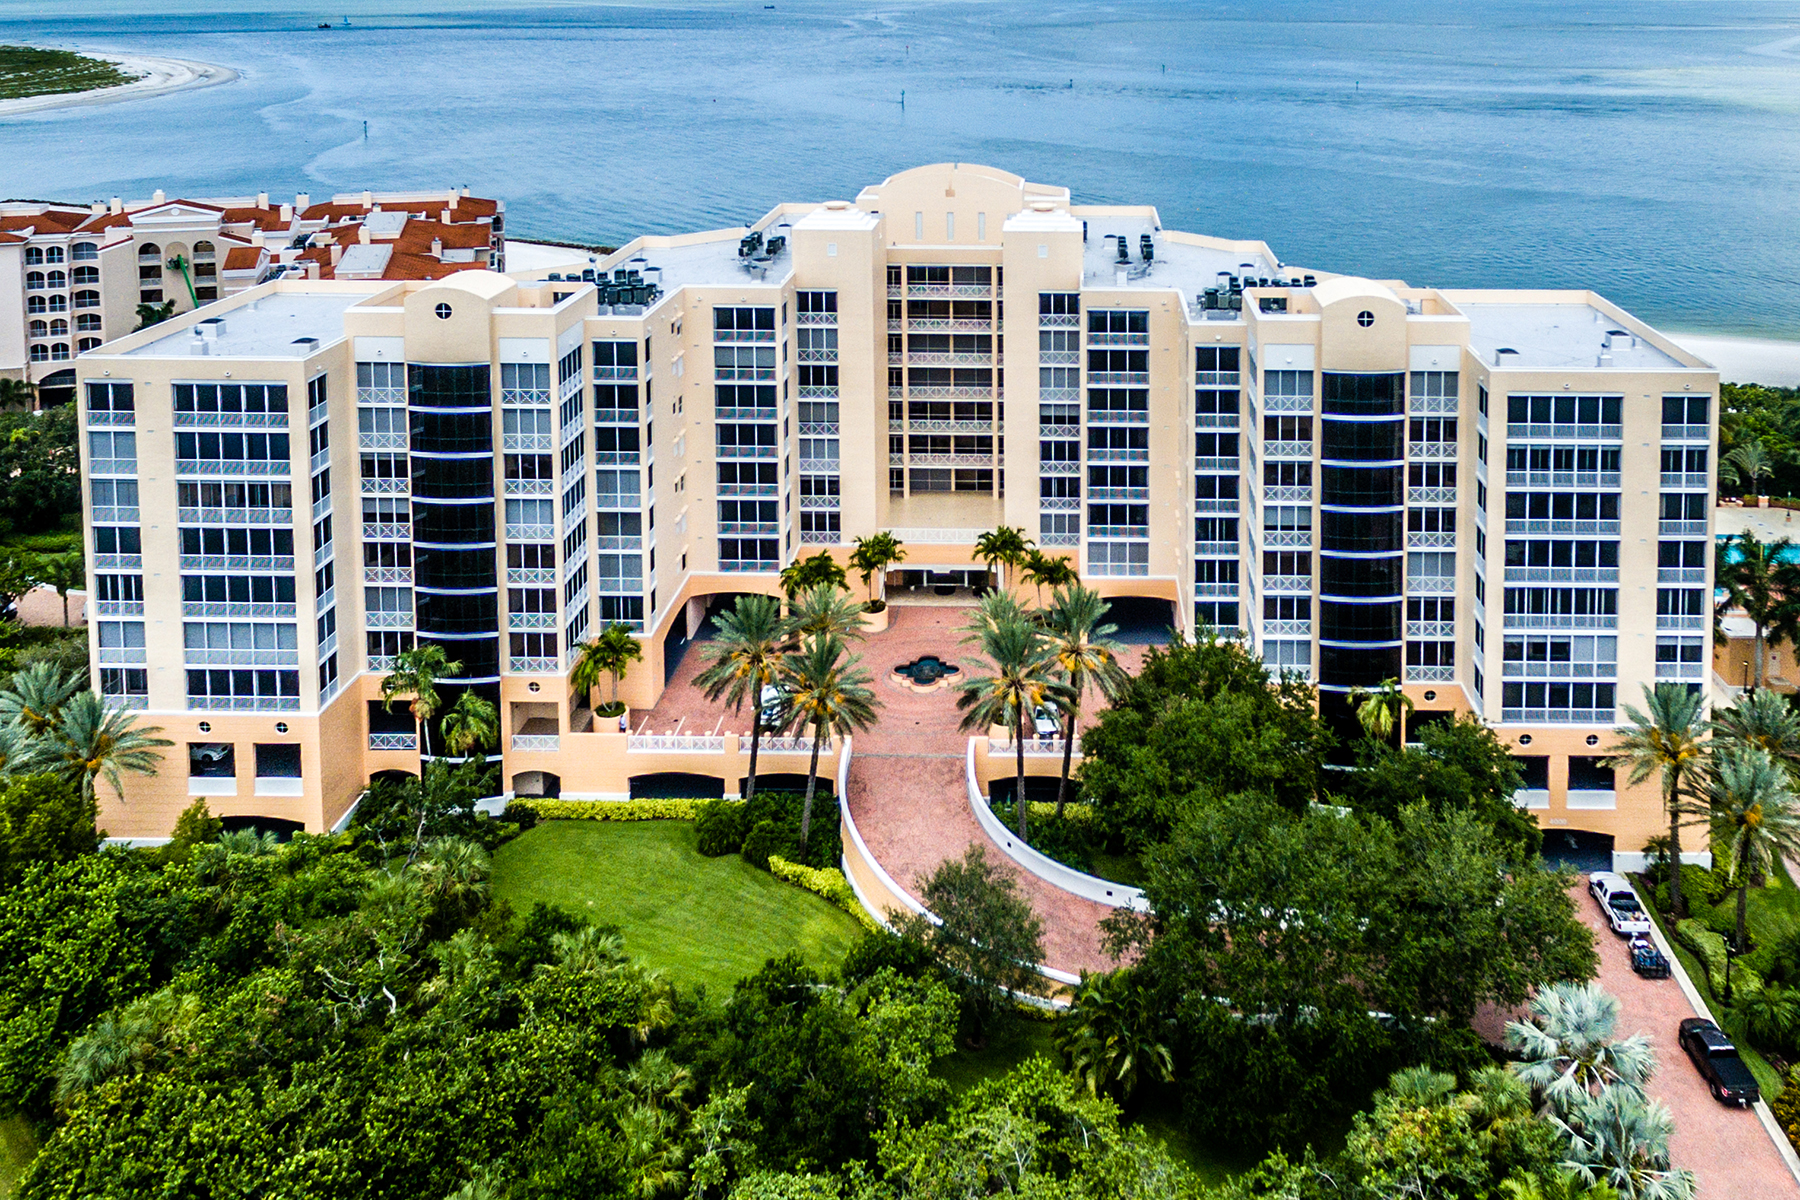 Condominium for Sale at HIDEAWAY BEACH 4000 Royal Marco Way 328, Marco Island, Florida 34145 United States